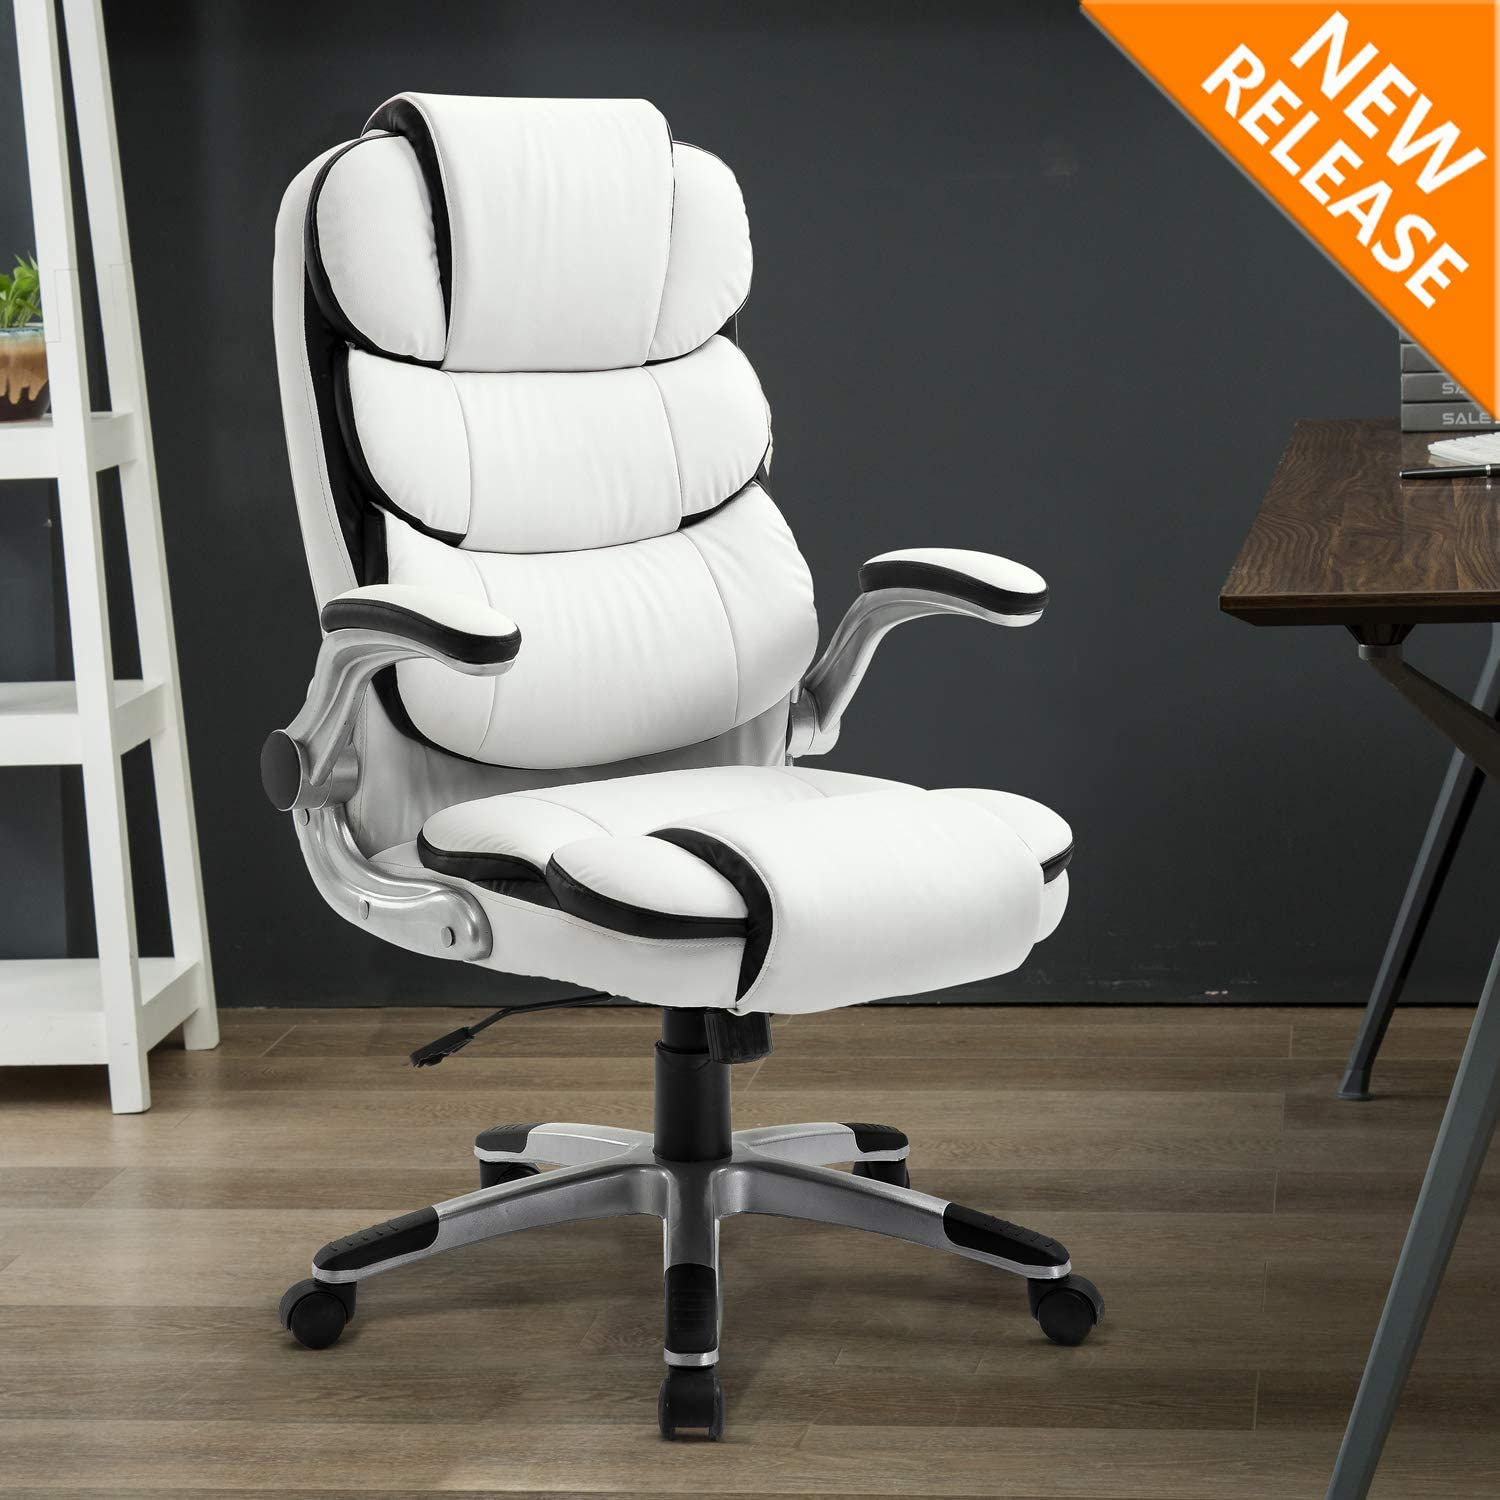 YAMASORO Heavy Duty White Office Chair Desk Chair Stylish High Back  Computer Chair with Adjustable Arms and Back Support for Heavy People